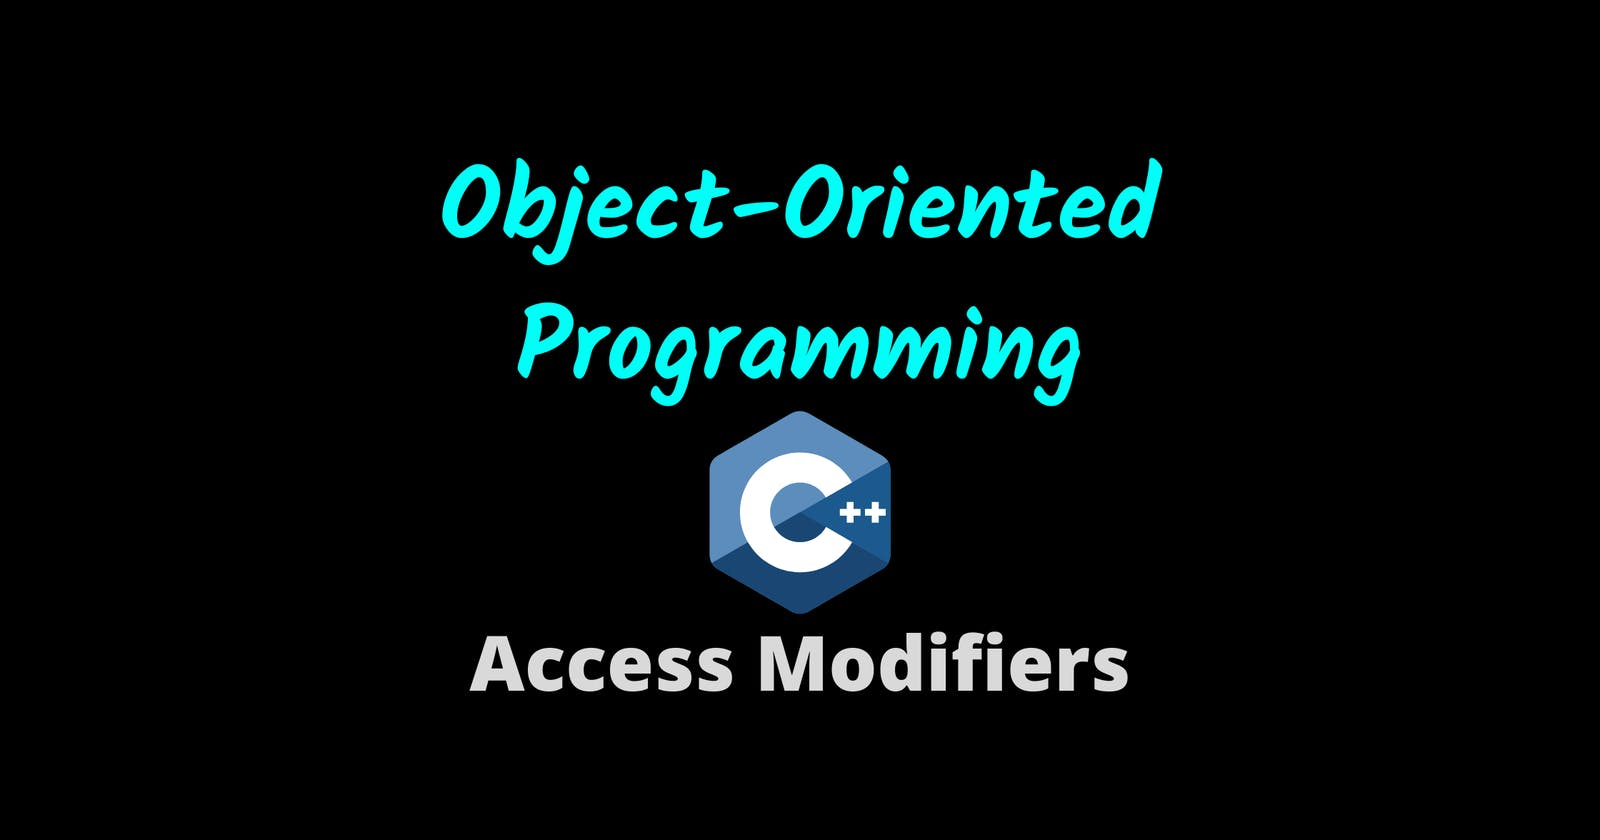 Object-Oriented Programming in C++: Access Modifiers